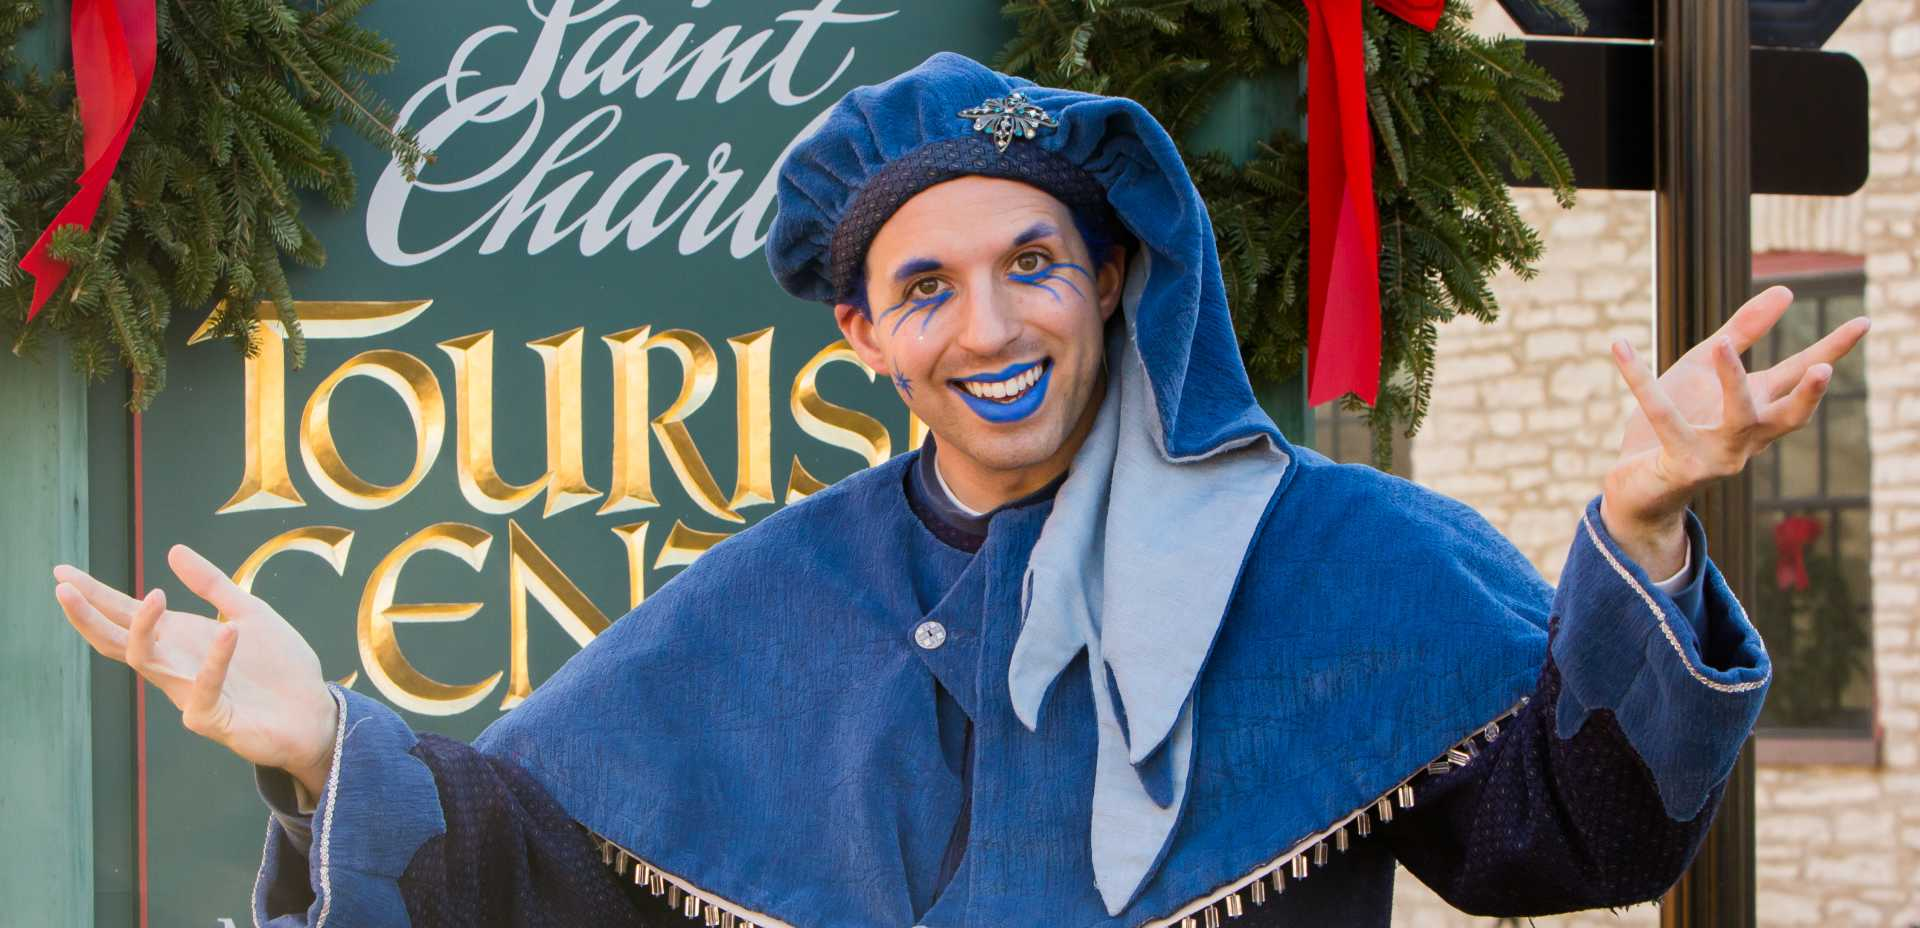 Christmas Childrens Events 2020 In St Charles, Mo St. Charles Christmas Traditions Free Events Schedule